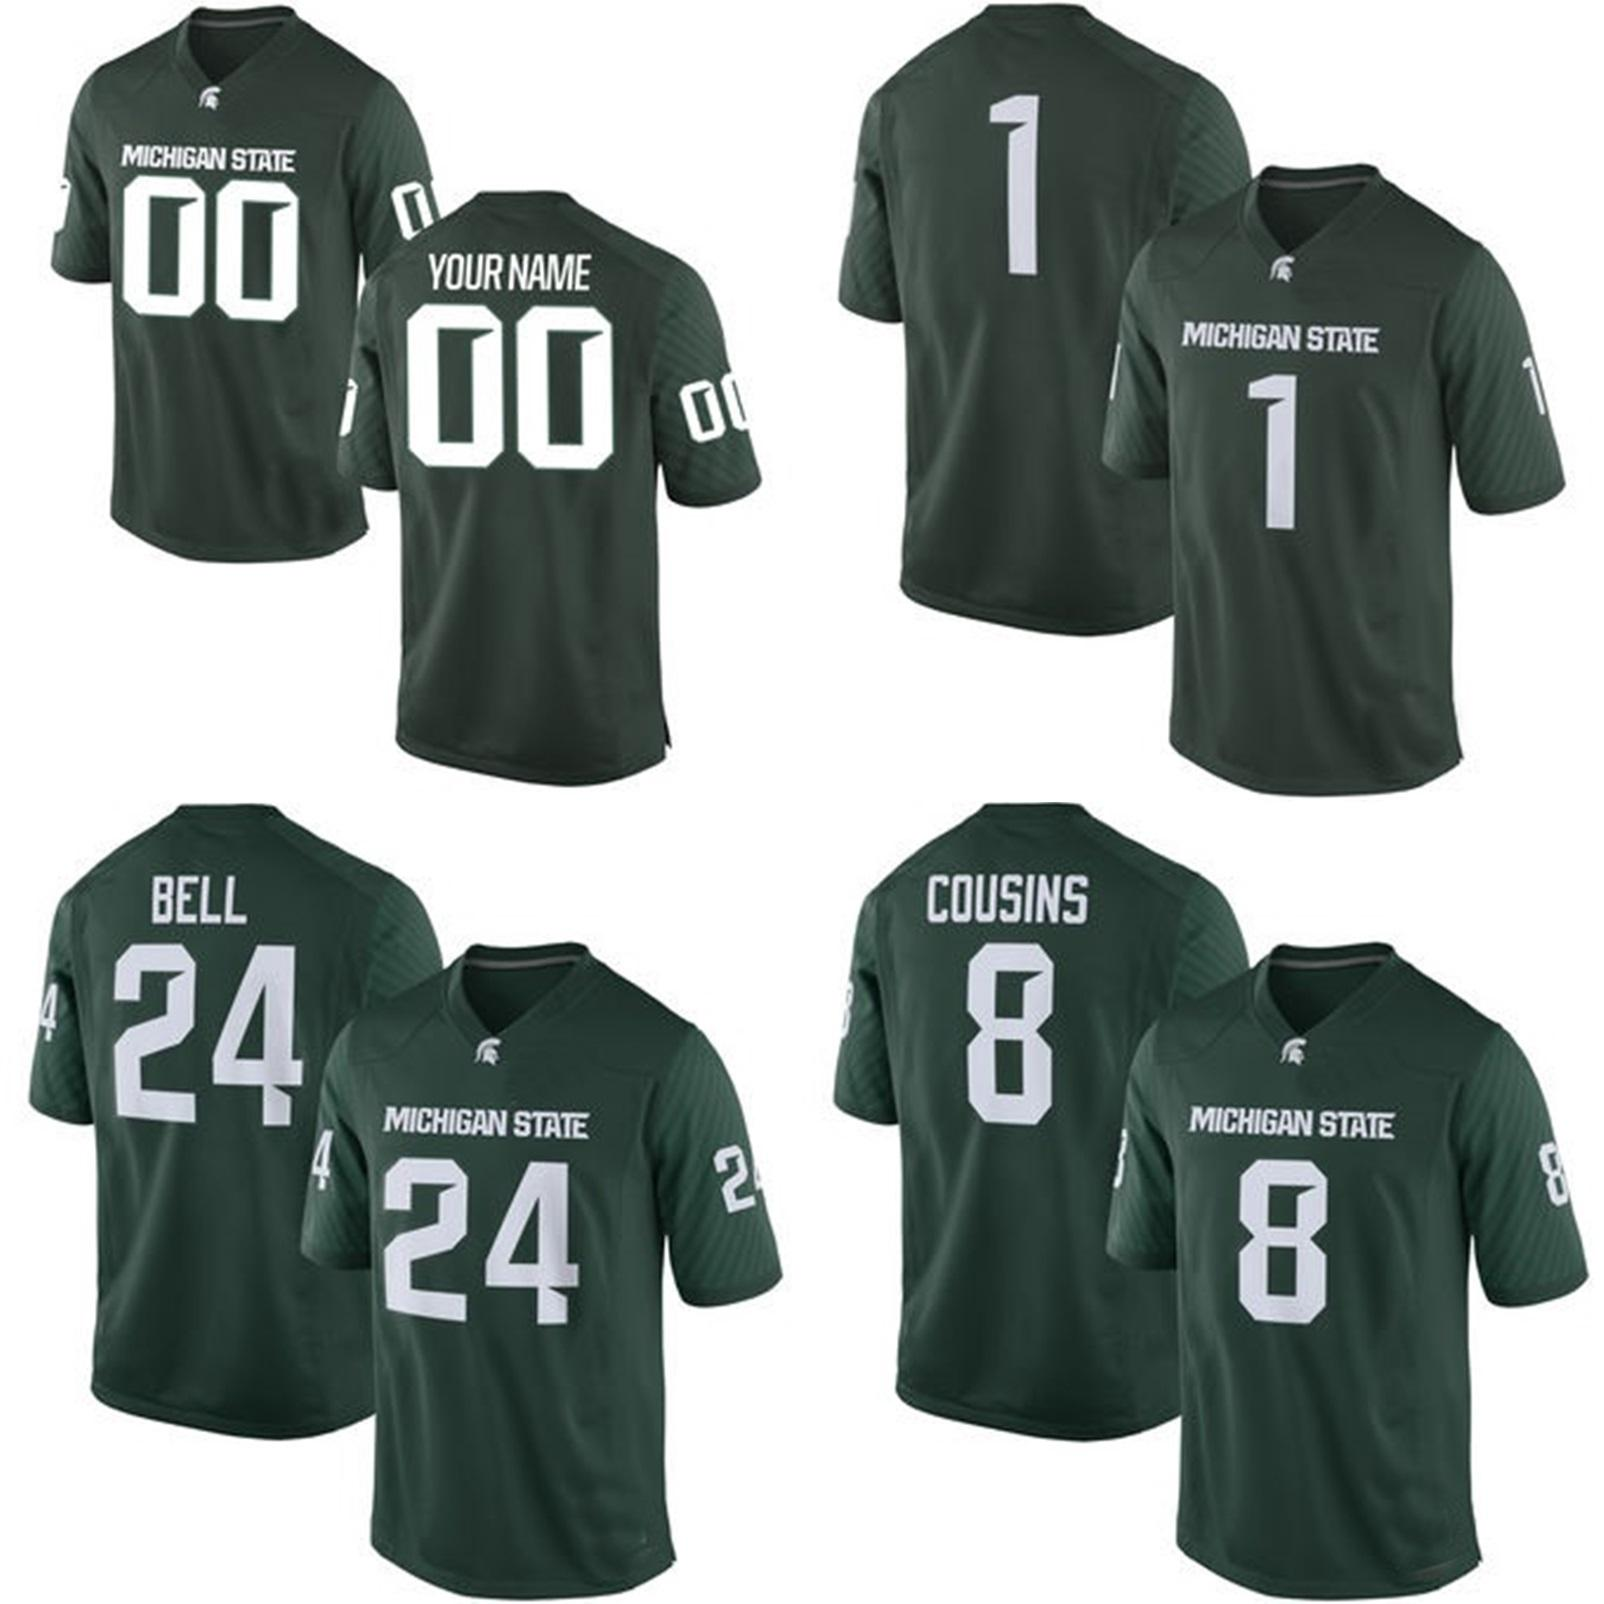 a22e25a0547 NCAA Michigan State Spartans Mens Womens Kids 8 Kirk Cousins 24 Bell Jersey  100% Stitched Custom Any Name Any No. College Football Jerseys Michigan  State ...